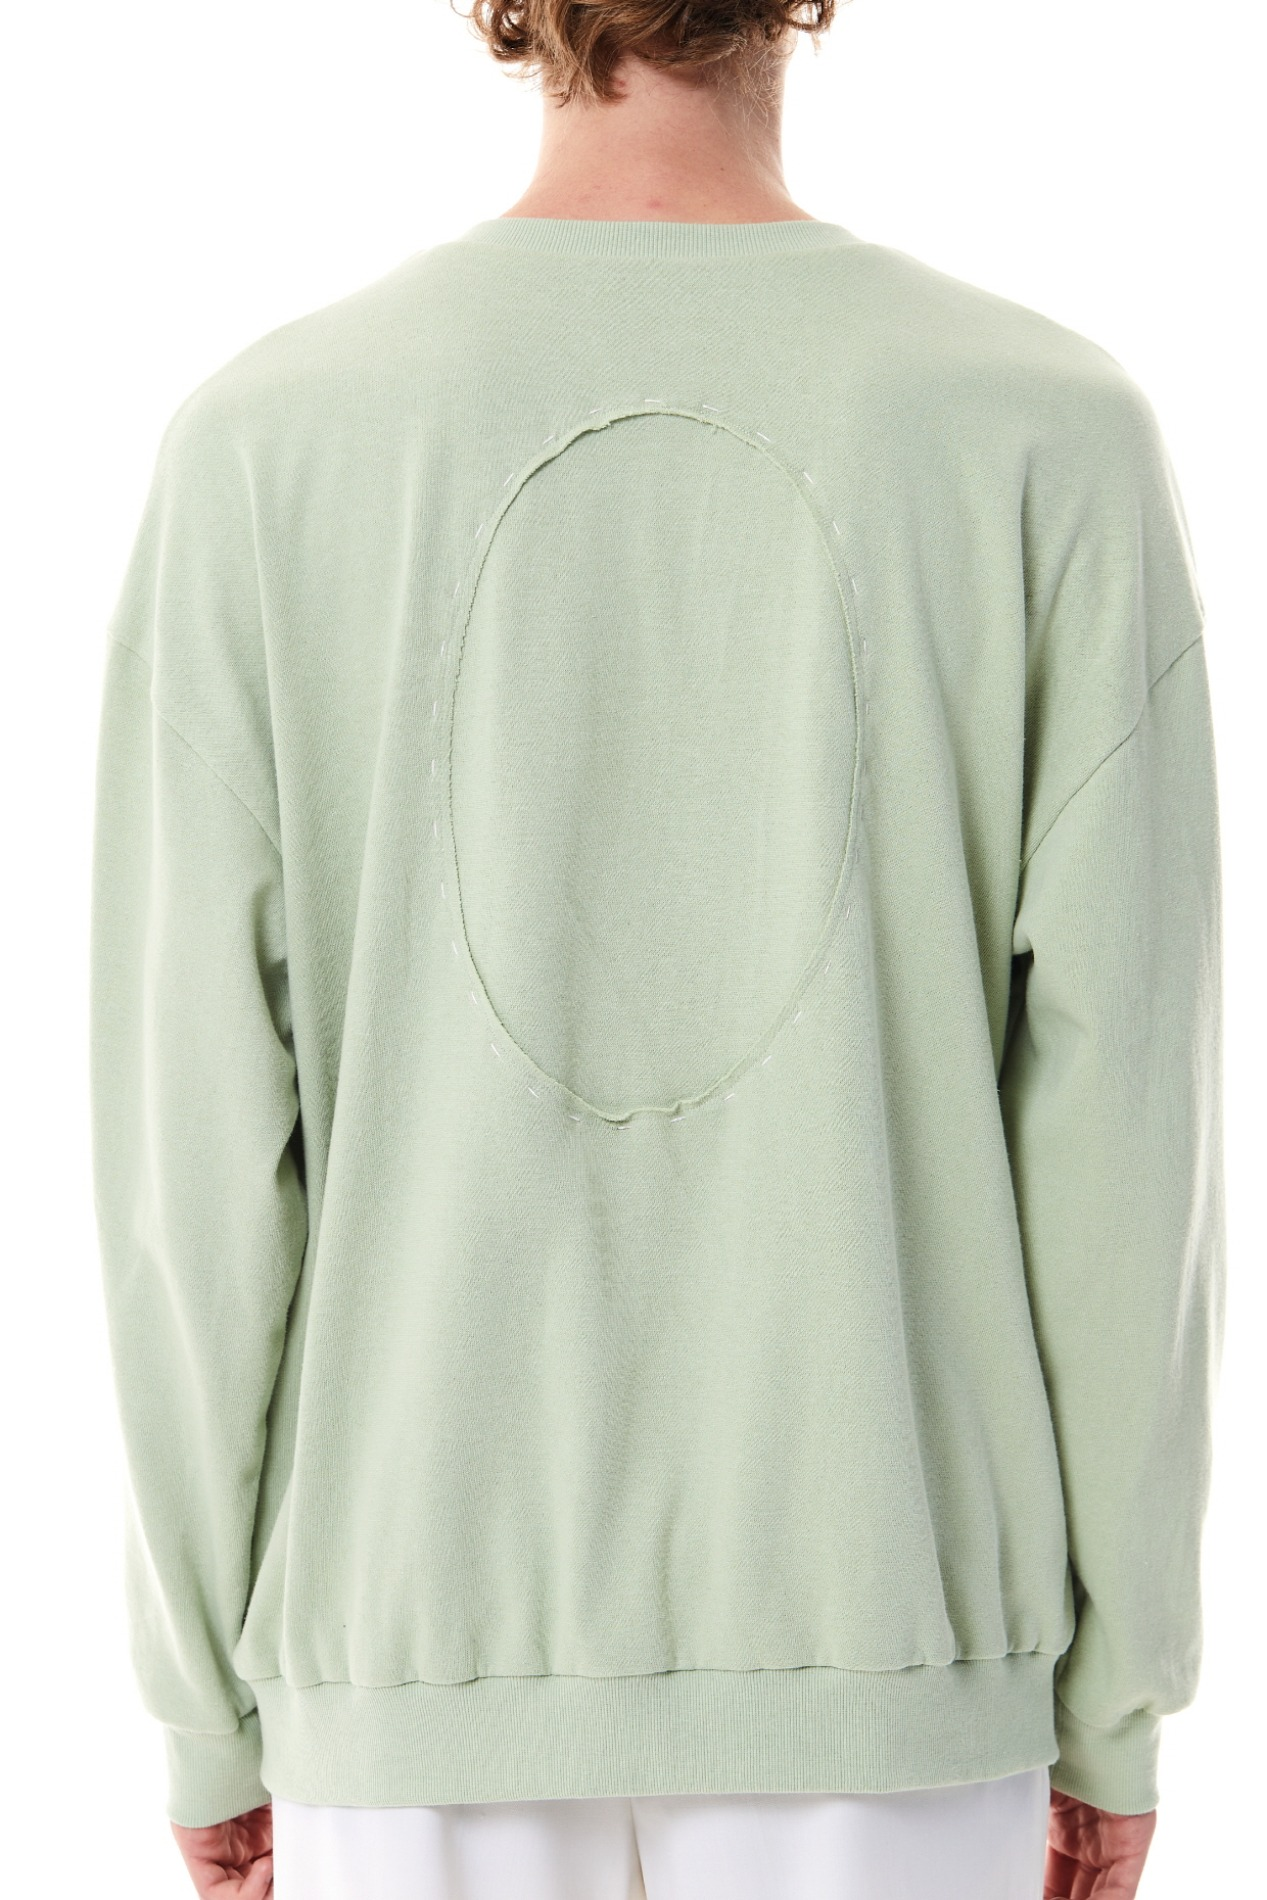 BackCircle Cropped Hand Stitch Sweatshirt